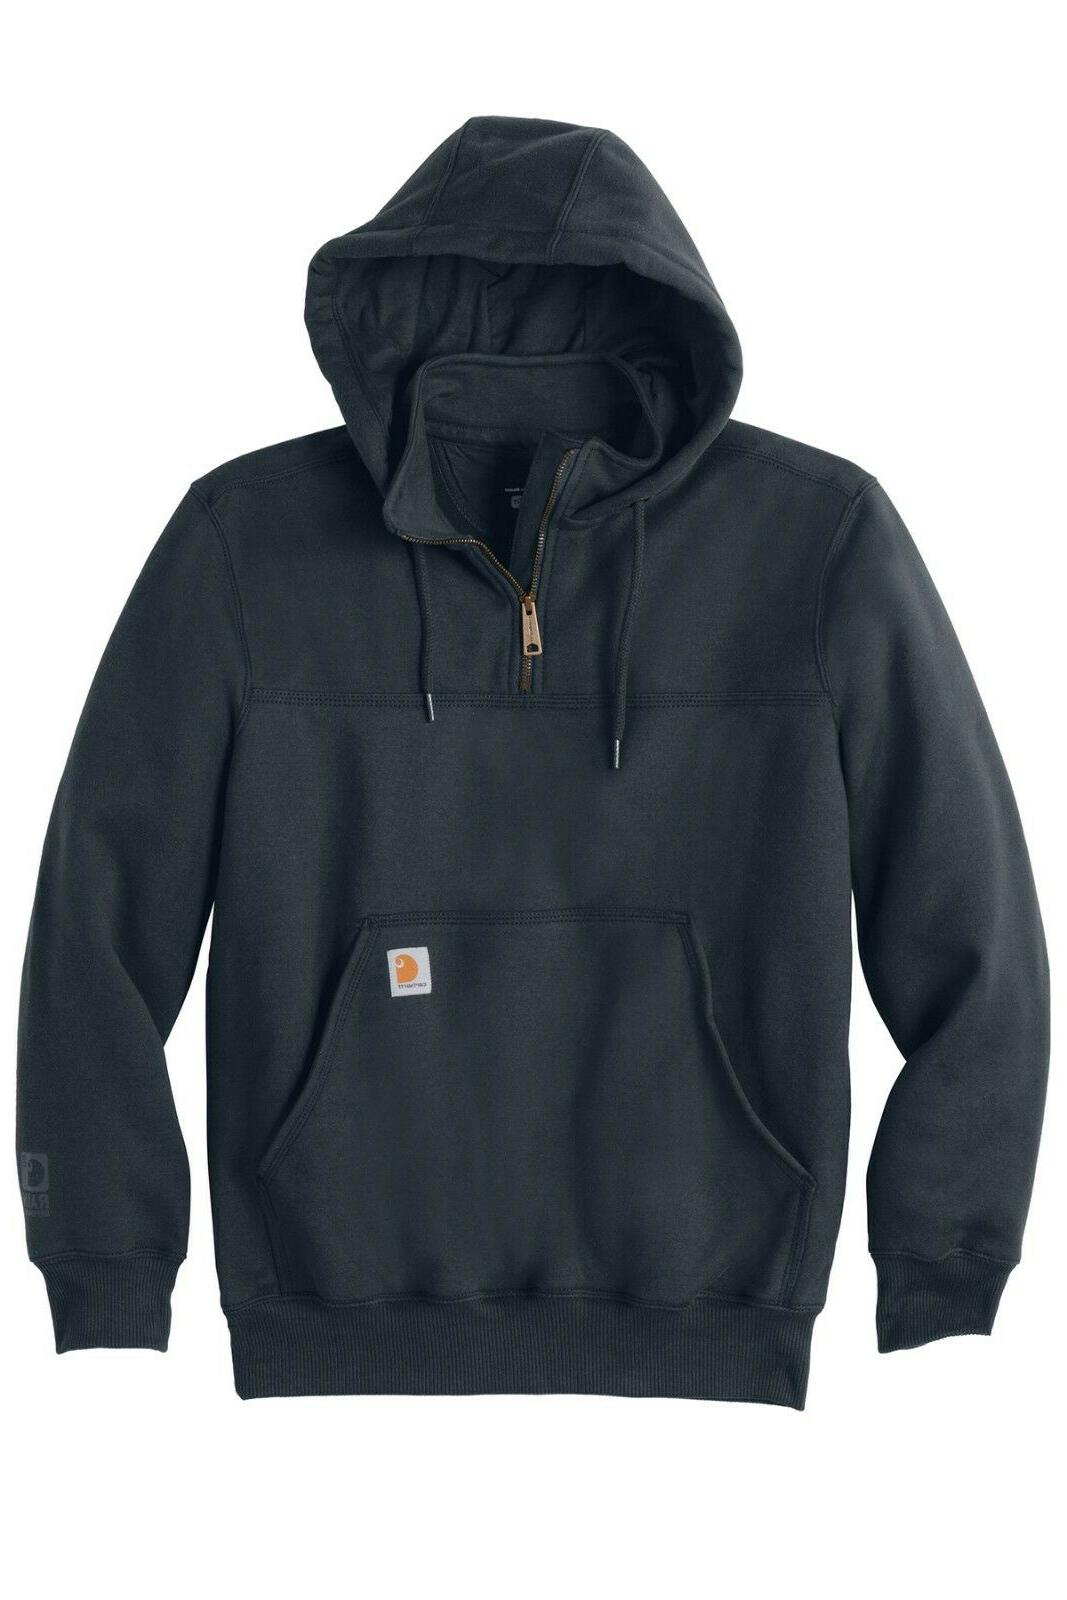 Carhartt Heavyweight Quarter Zip 100617